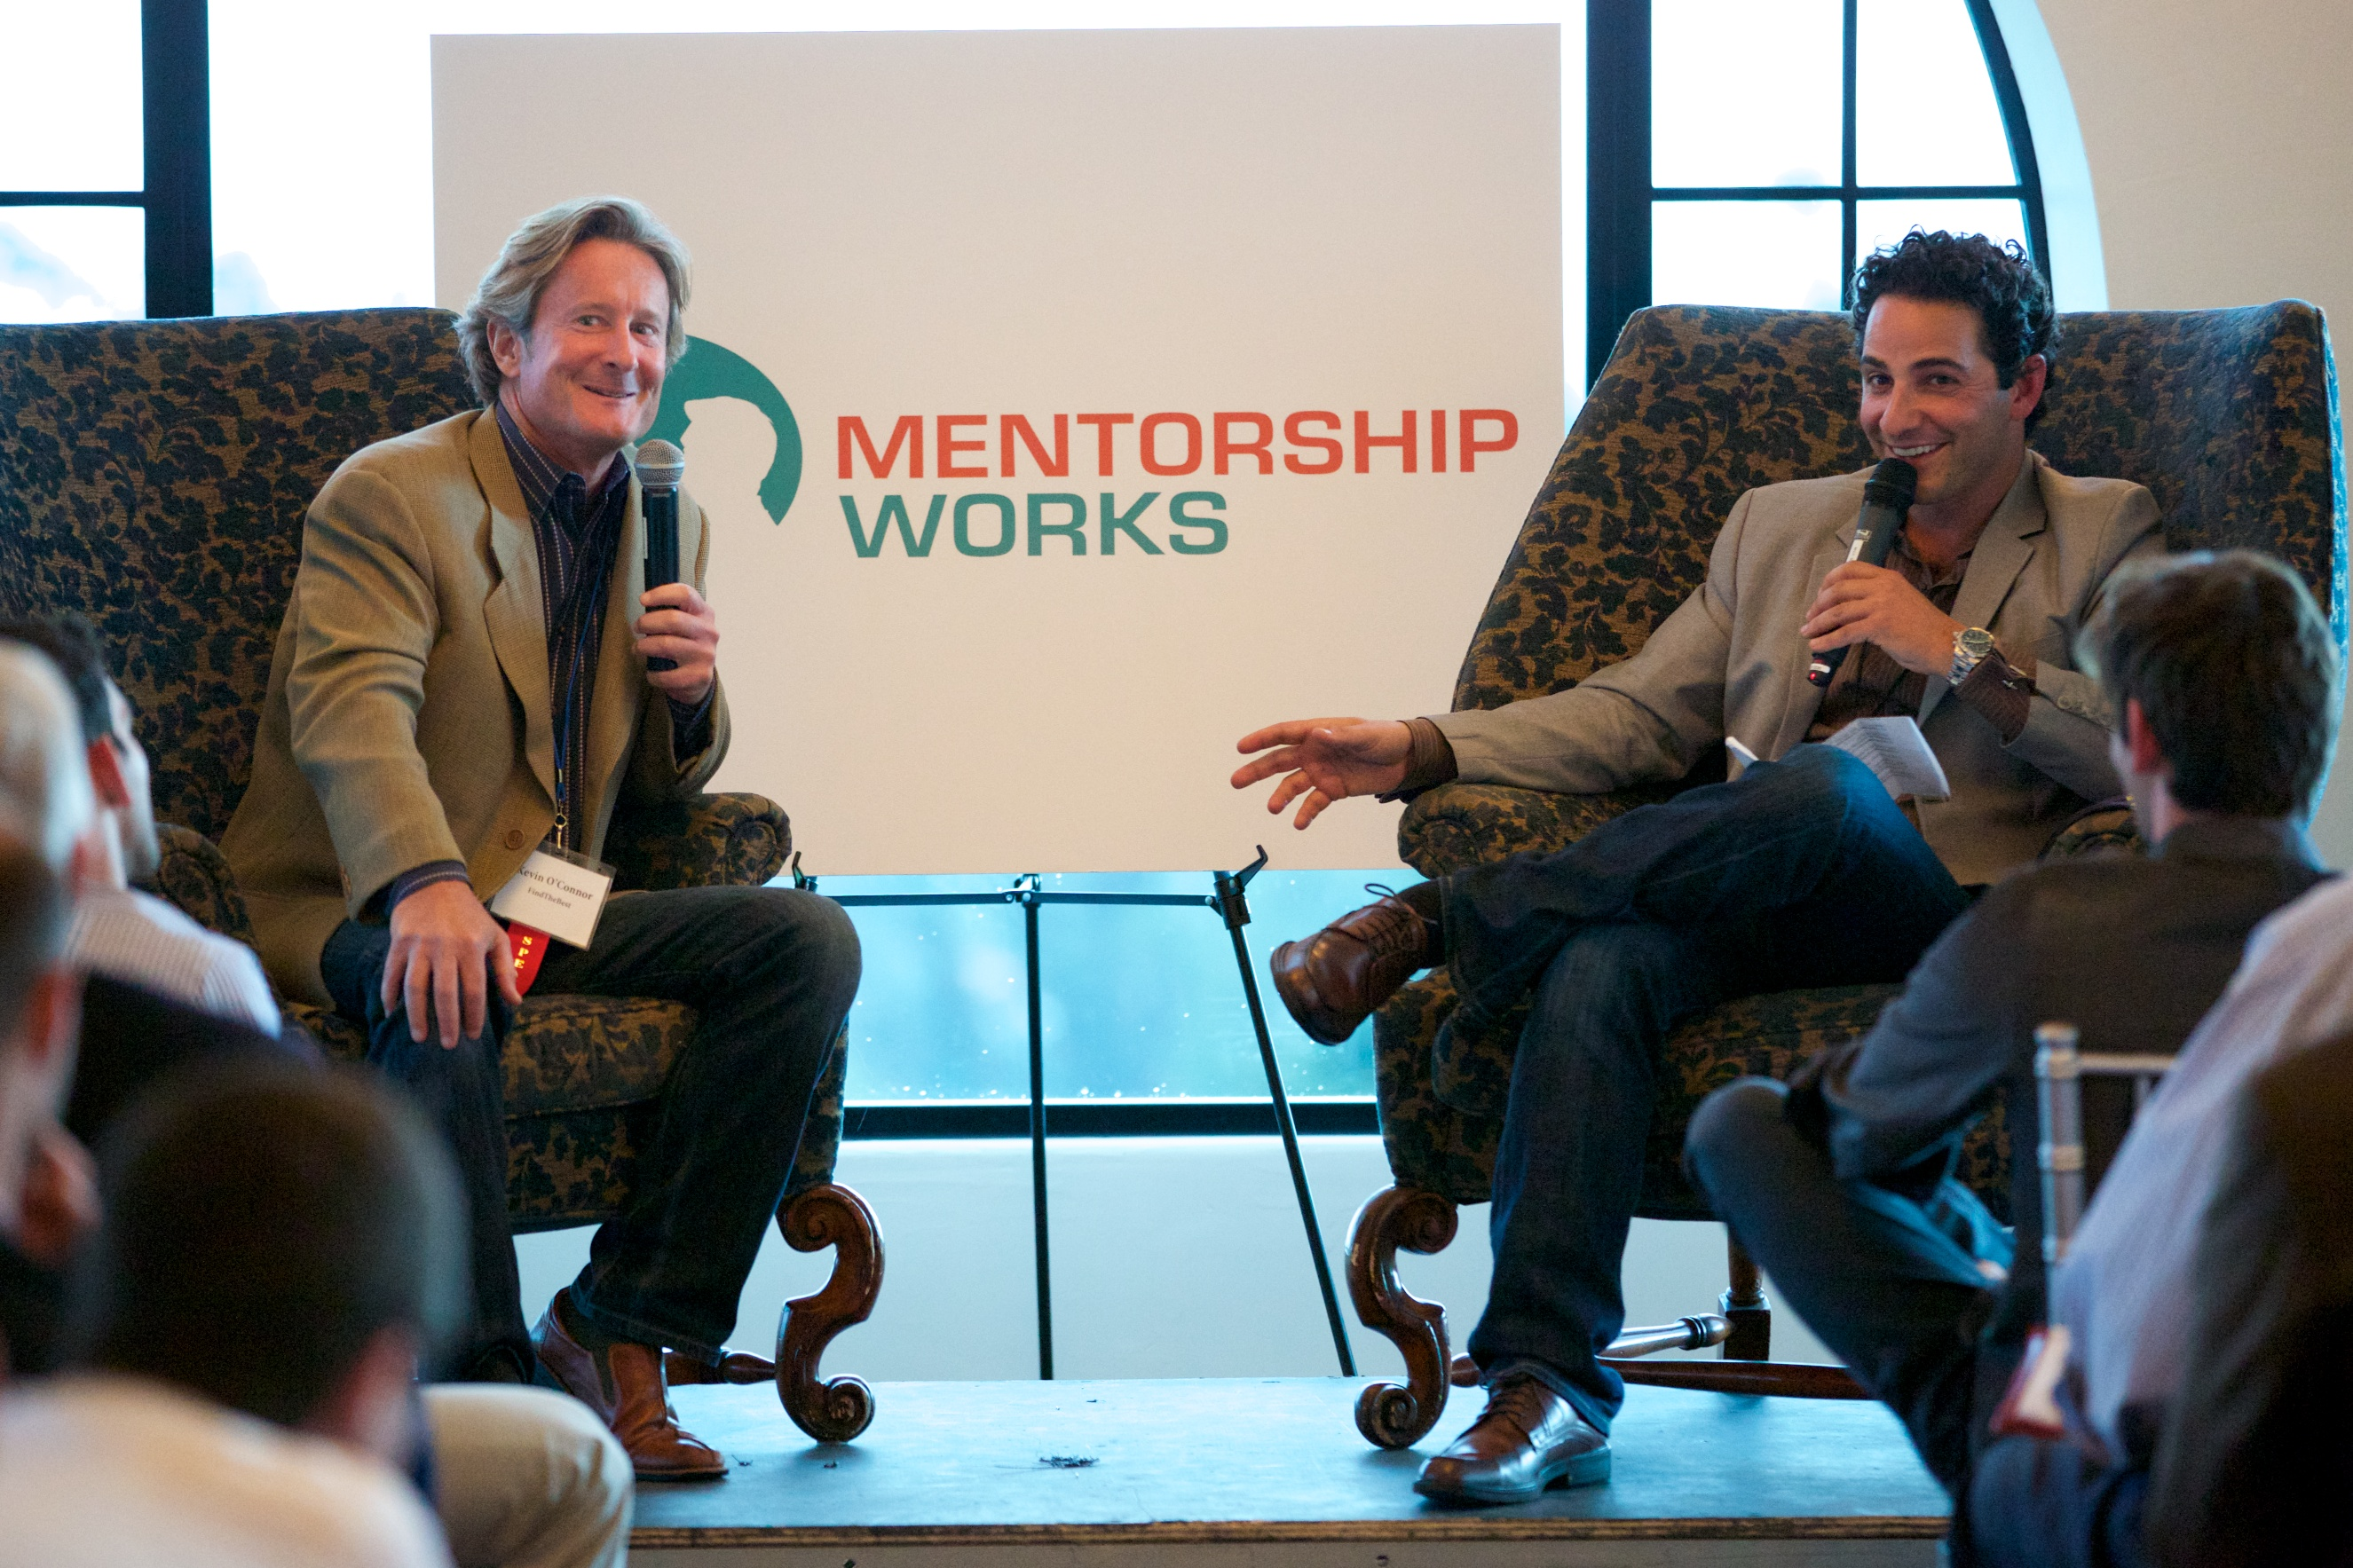 Jacques Habra and Kevin O'Connor Discussing Mentorship